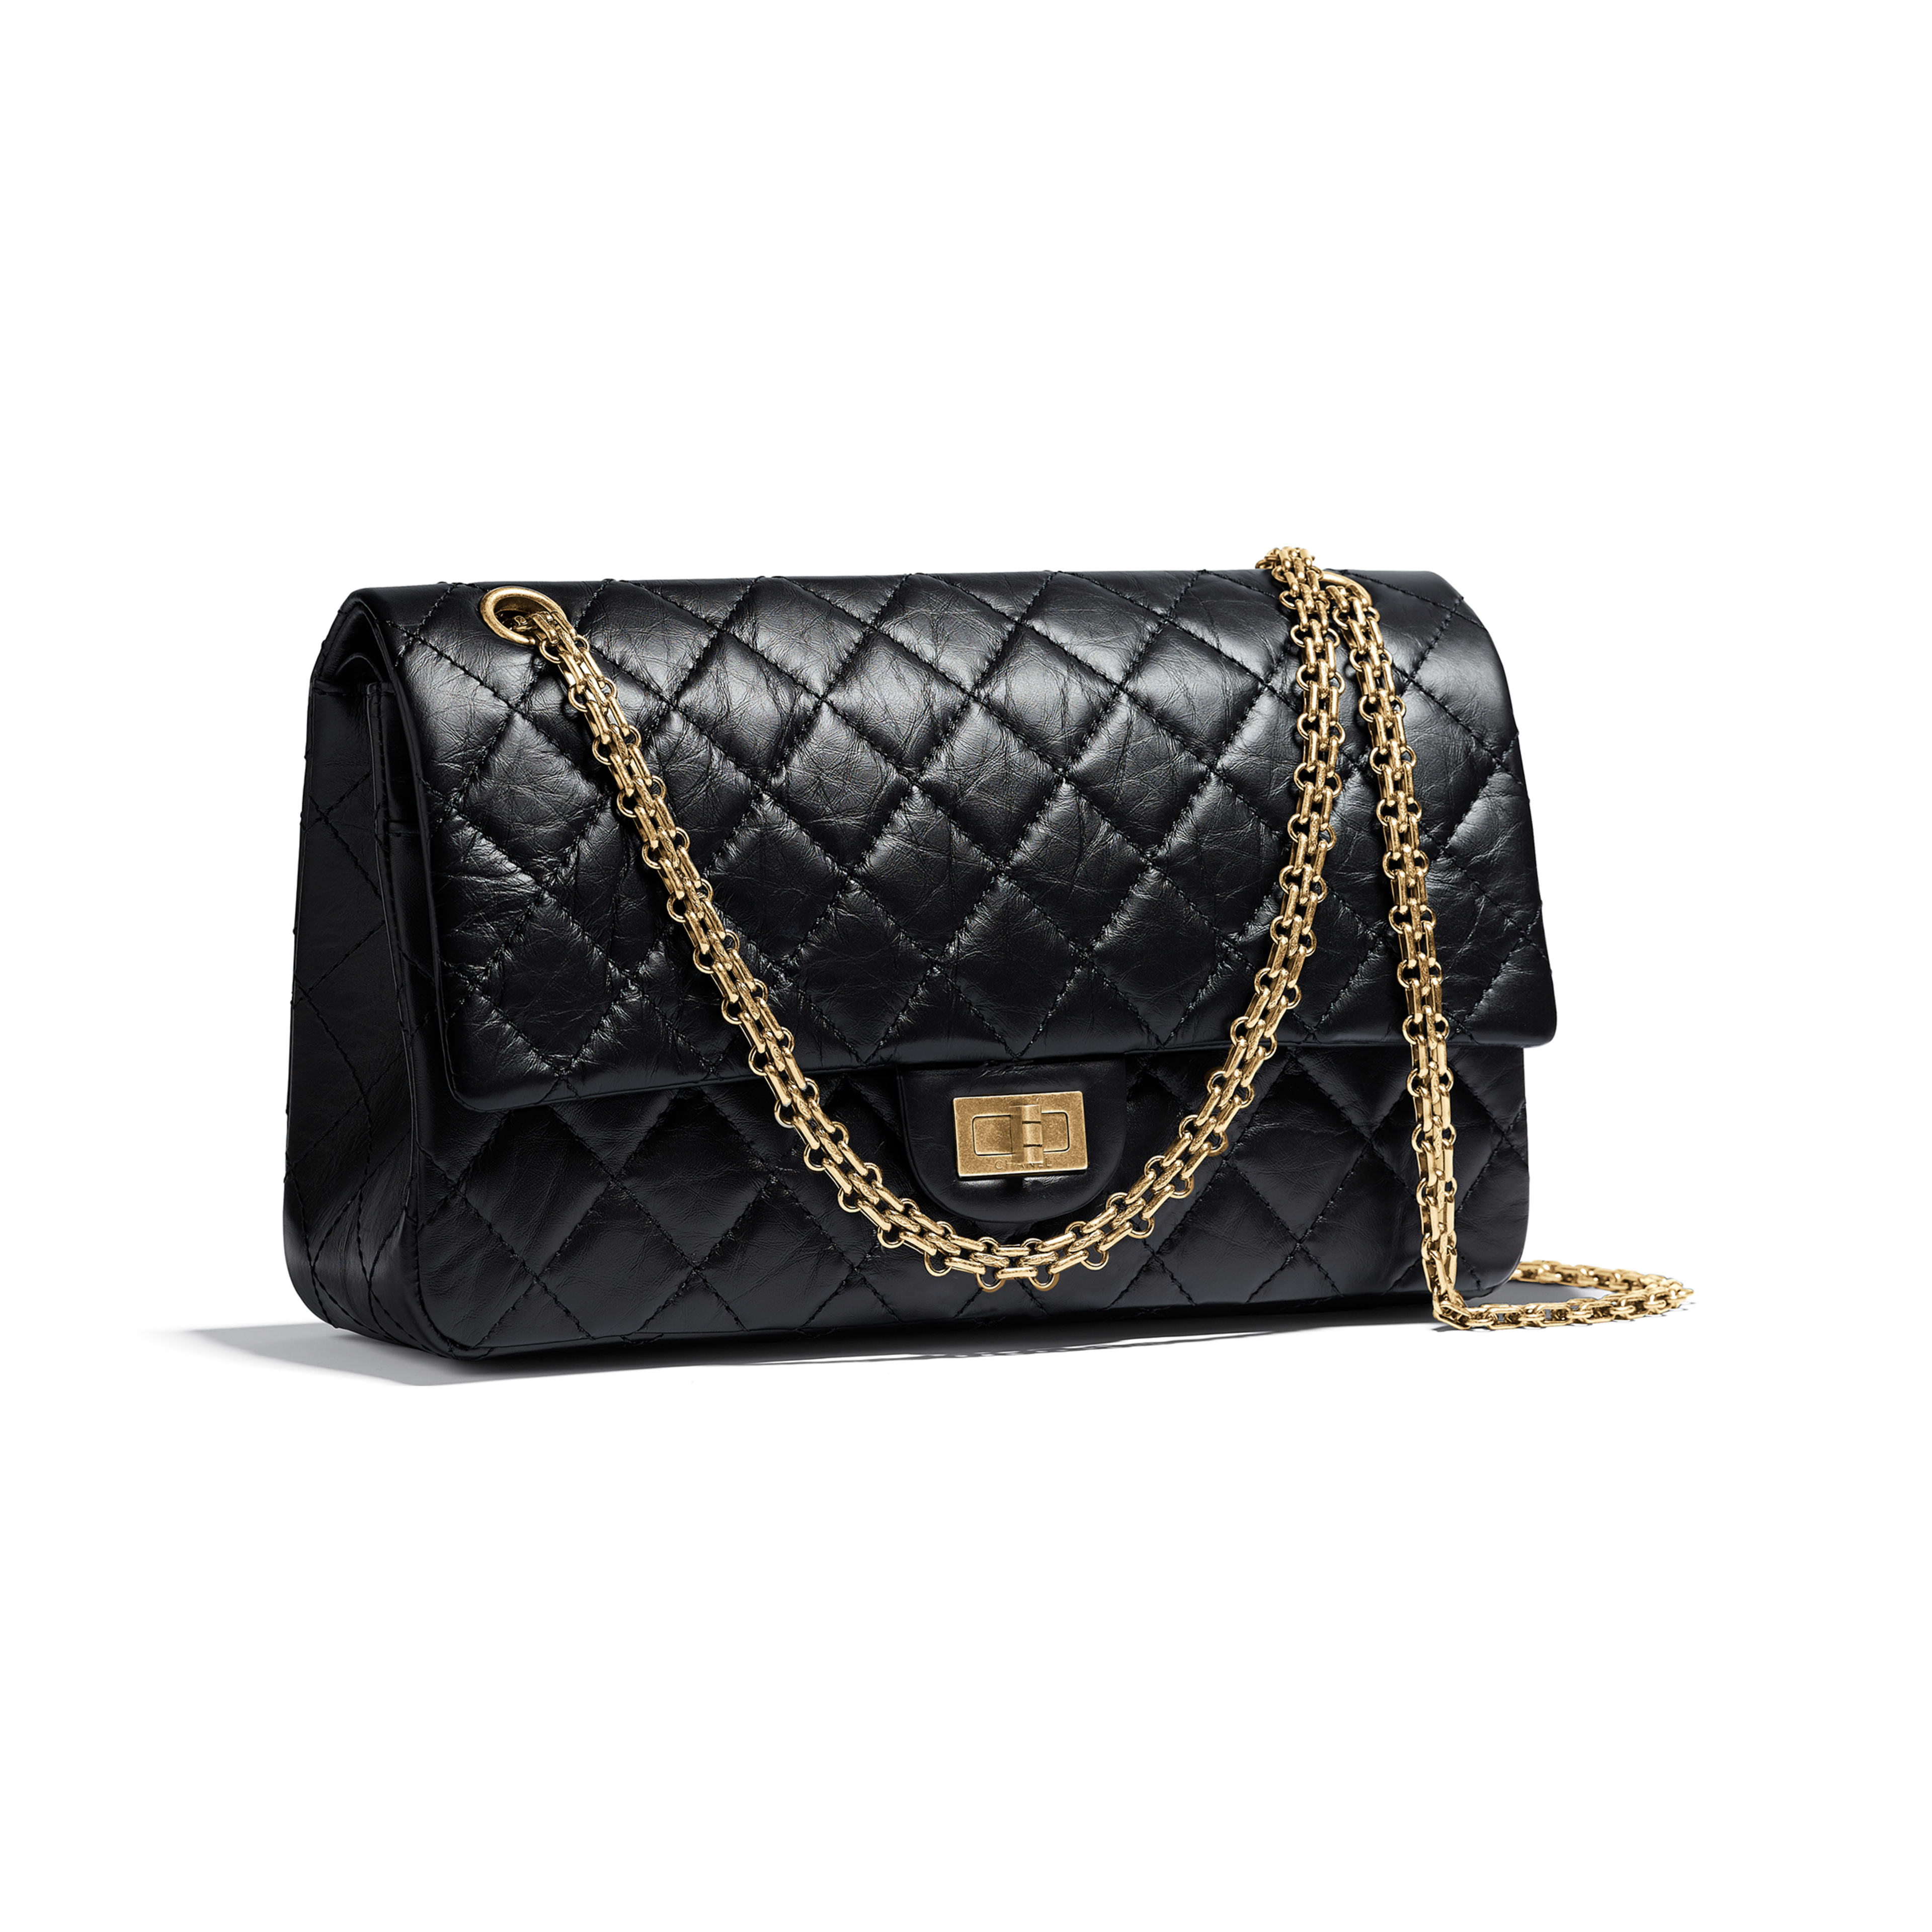 Large 2.55 Handbag - Black - Aged Calfskin & Gold-Tone Metal - Other view - see full sized version